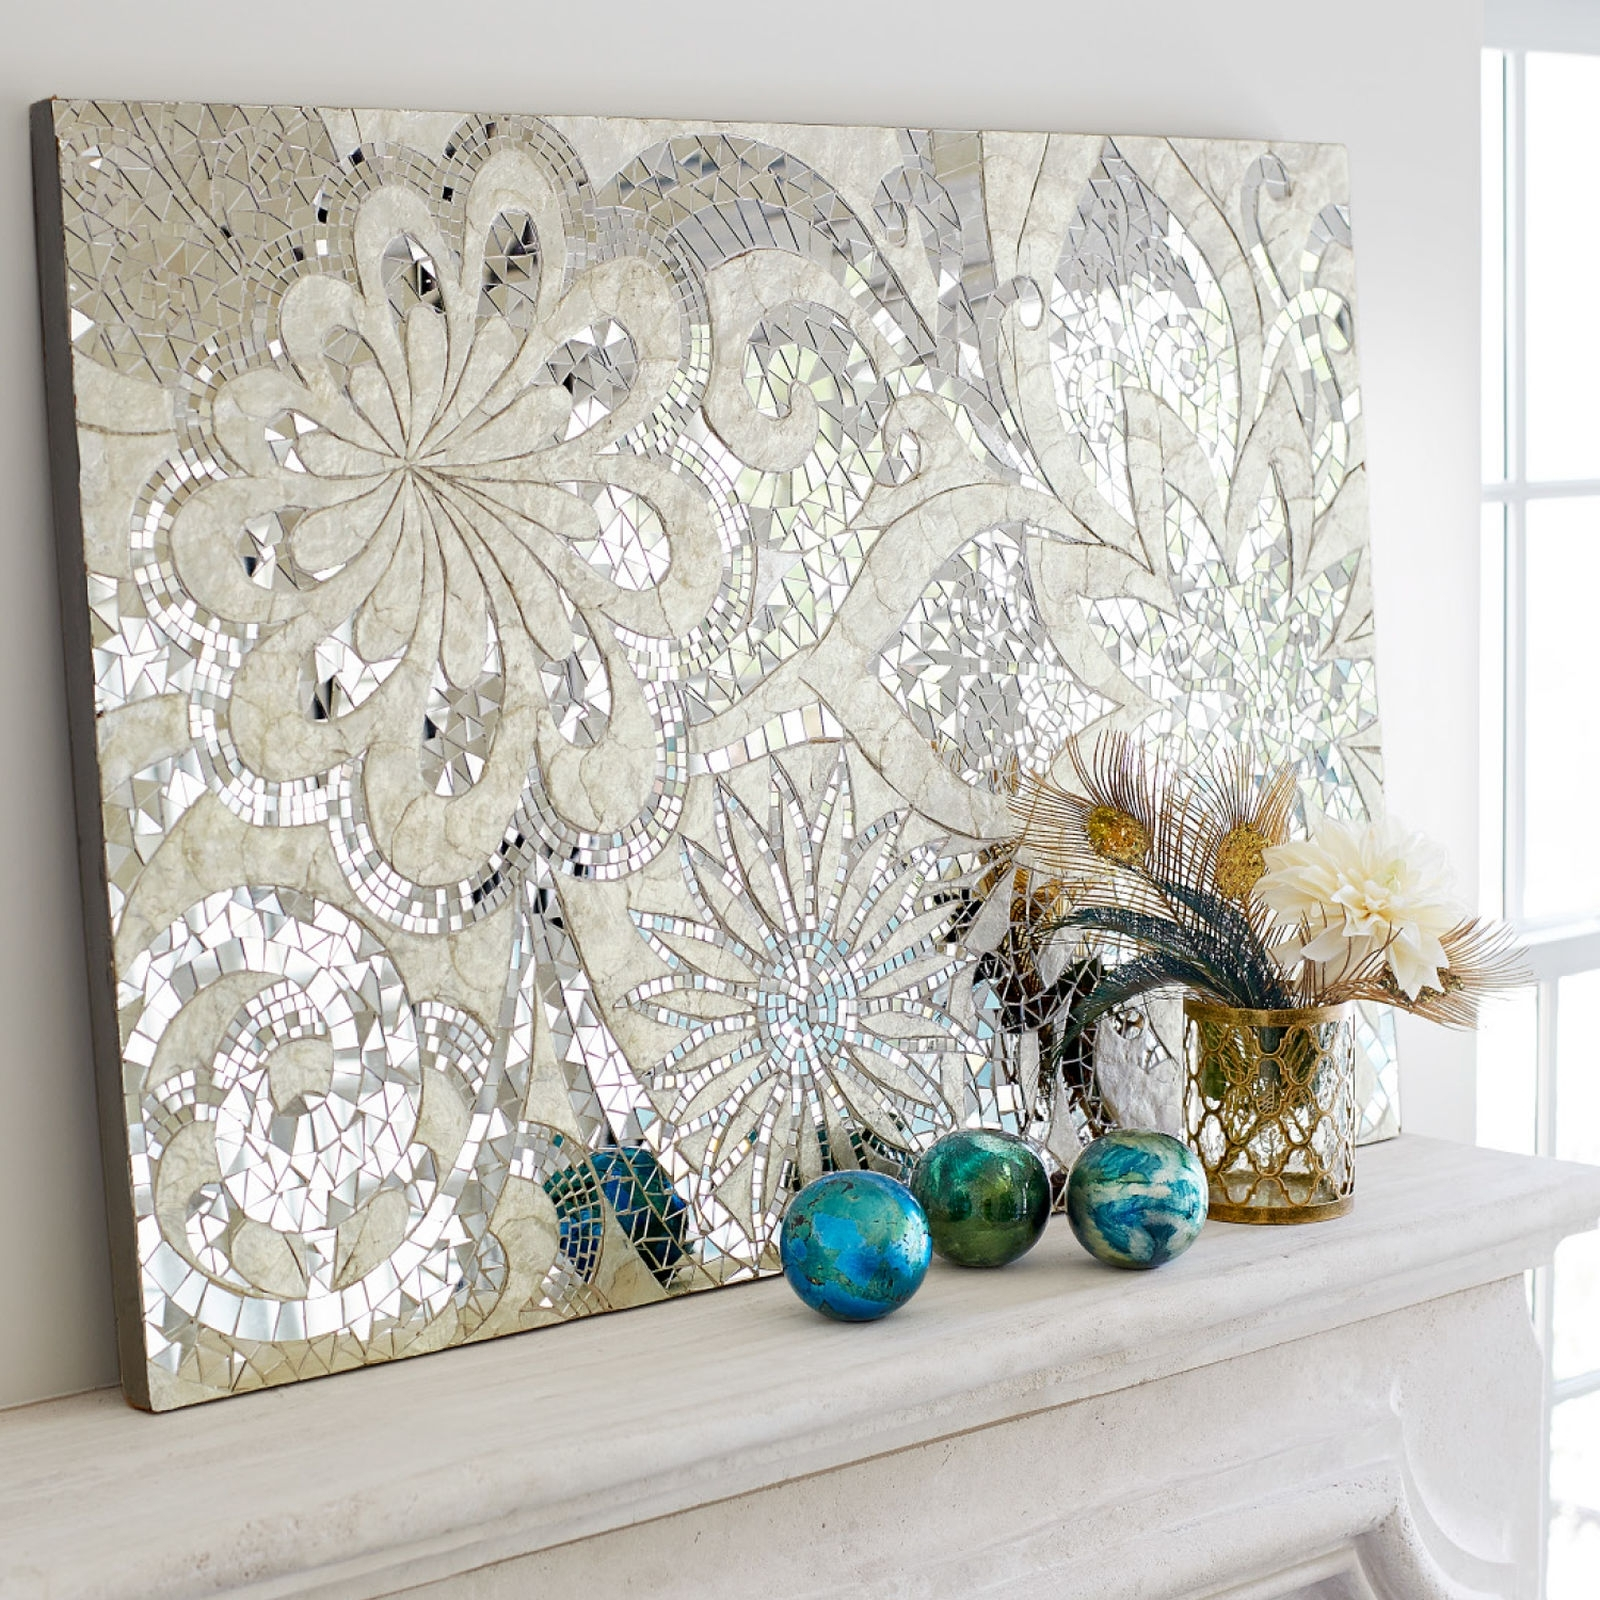 Mosaic Wall Art New Floral Capiz Panel Mirror Tiles Indonesia And Throughout Mosaic Wall Art (View 7 of 20)